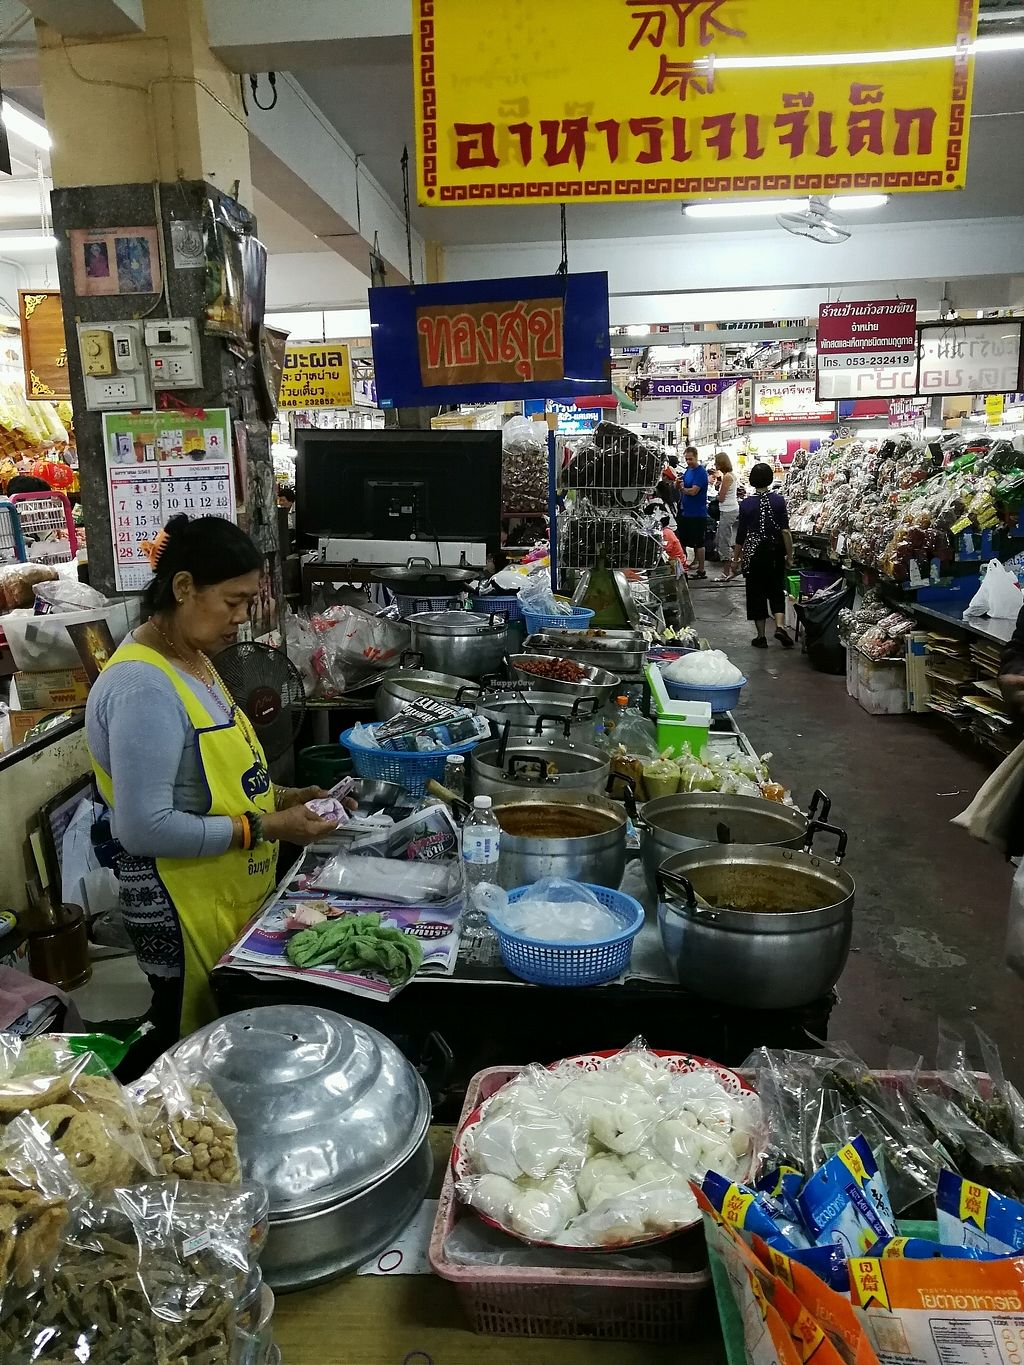 "Photo of Warorot Market Food Stall  by <a href=""/members/profile/RawChefYin"">RawChefYin</a> <br/>Best way to look for the stall is this yellow and red sign <br/> January 26, 2018  - <a href='/contact/abuse/image/98921/350992'>Report</a>"